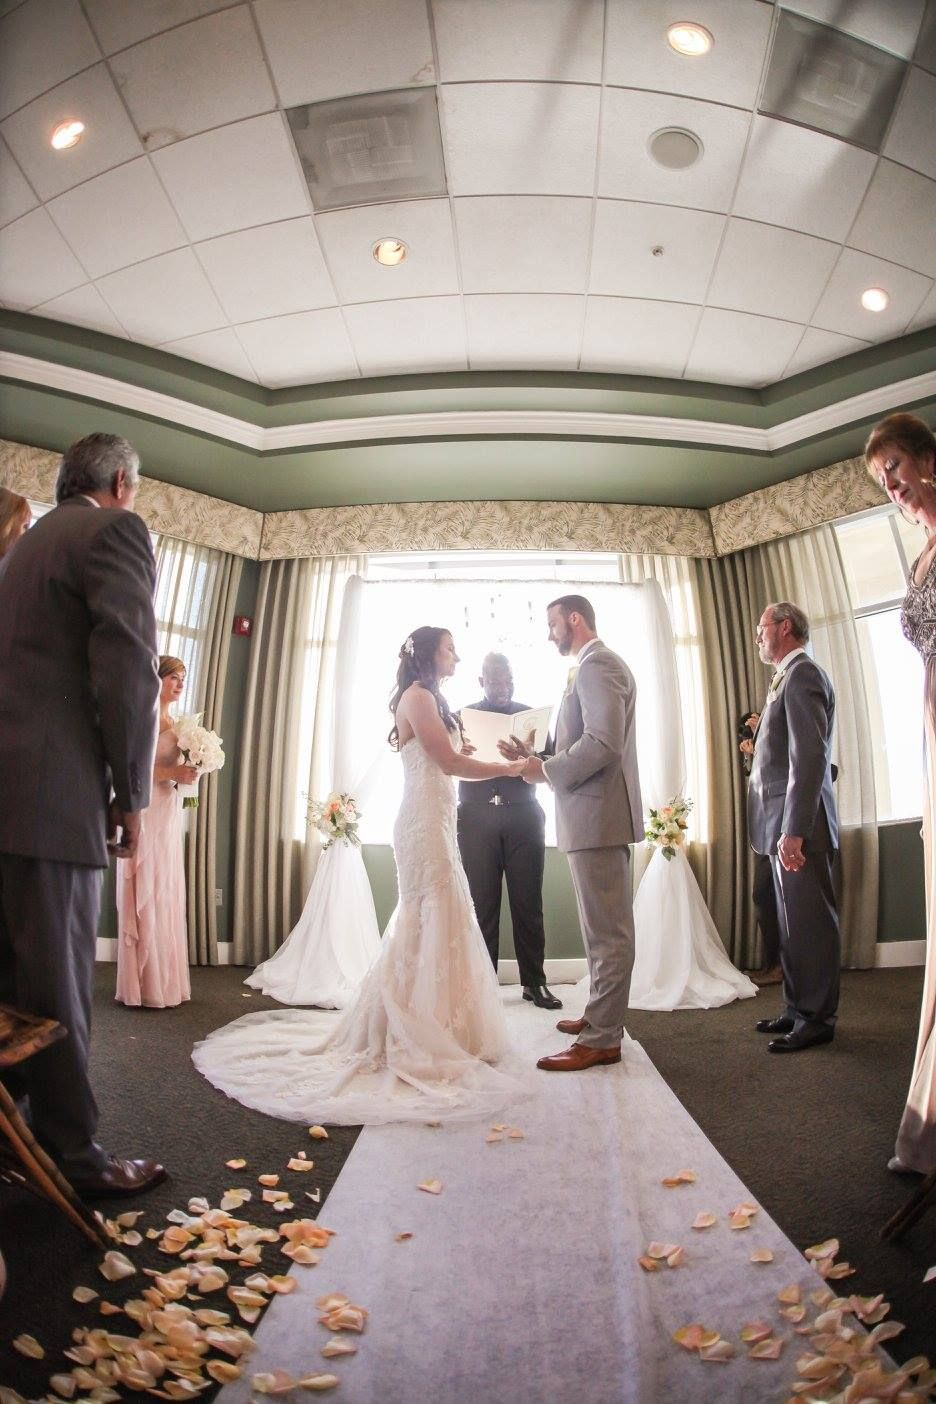 Isla Del Sol Yacht and Country Club, St Petersburg, FL, Ceremony Set Up, Rose Petals, Indoor Ceremony, Bride and Groom, I DO, Iza's Flowers, Inc.